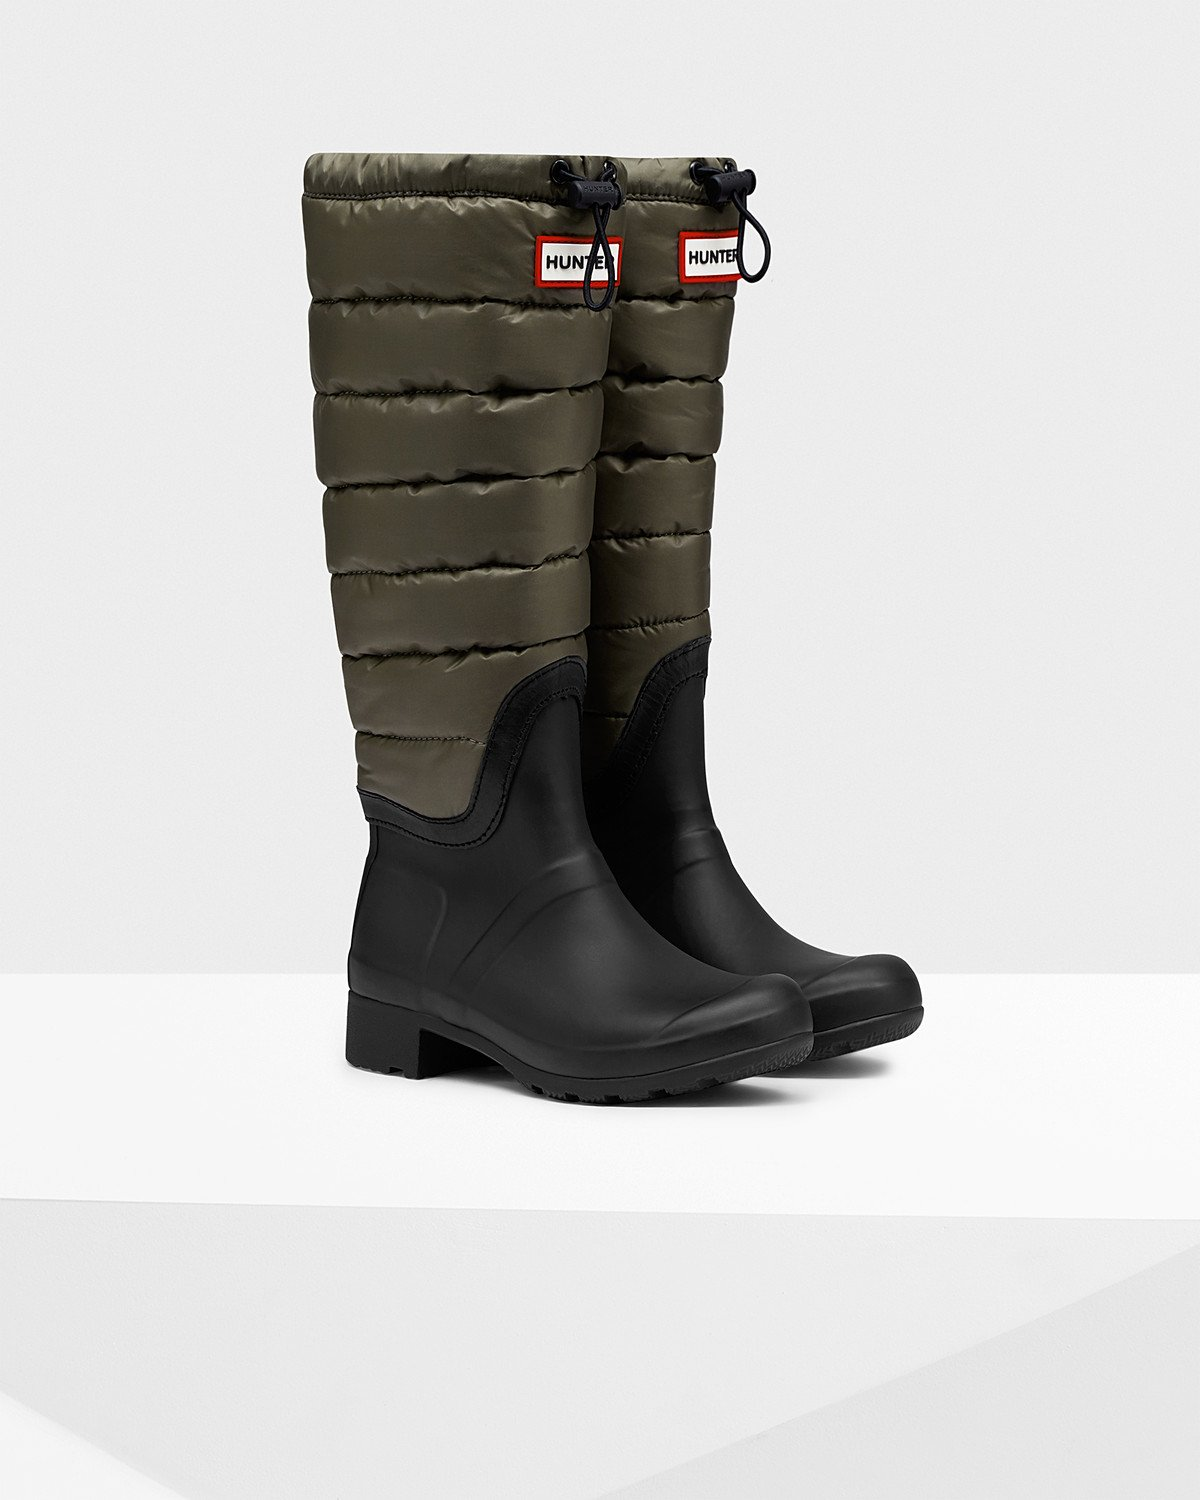 (YTKCZZXJPW) Original Lace Up (Swamp Green) Womens Rain Boots Hunter Boots